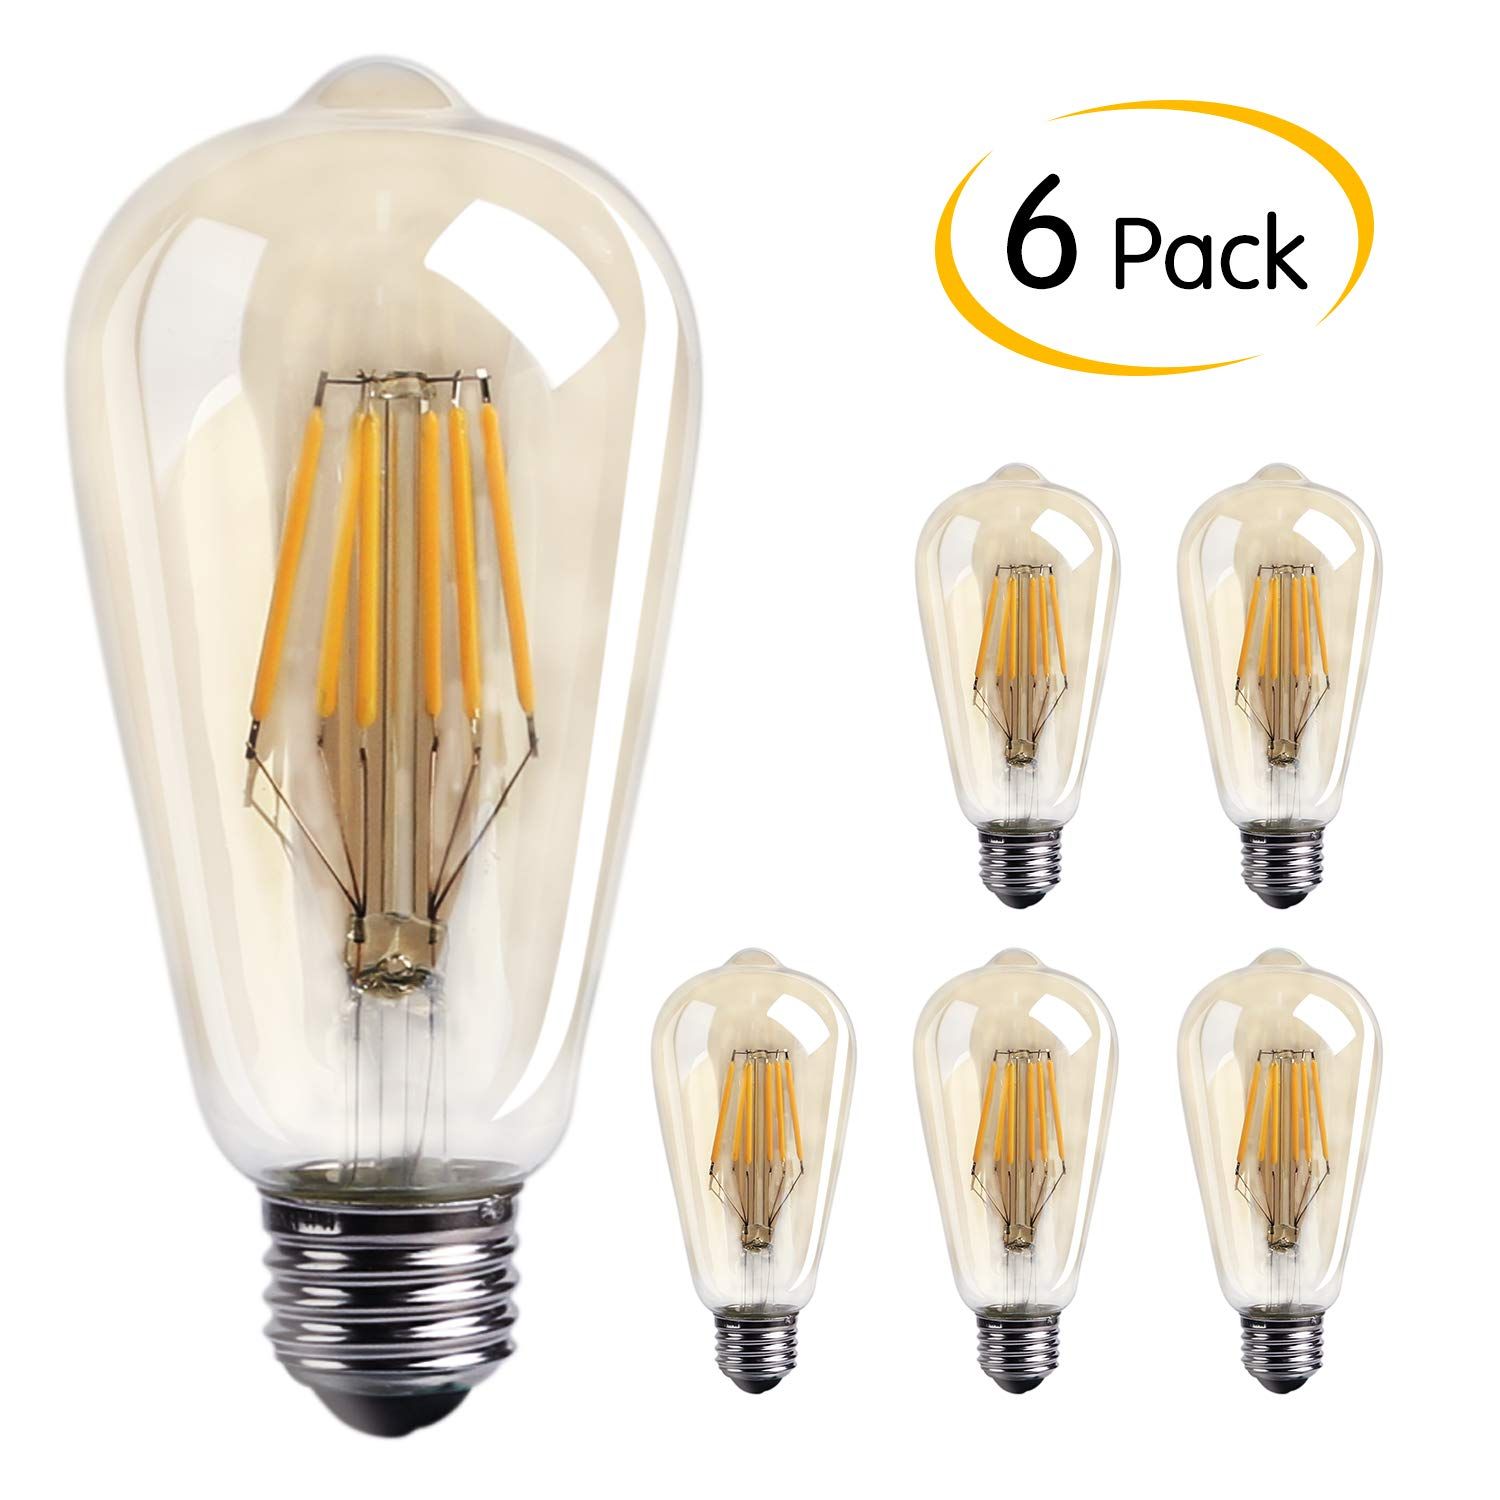 Brightown Edison LED Bulb 6 Pack, Natural White 4000K, 6-Watt Filament Light Bulb, 60 Watt Equivalent ST64 A19 LED Replacement Bulb for Reading Cage Pendant Lights Wall Sconces, Dimmable